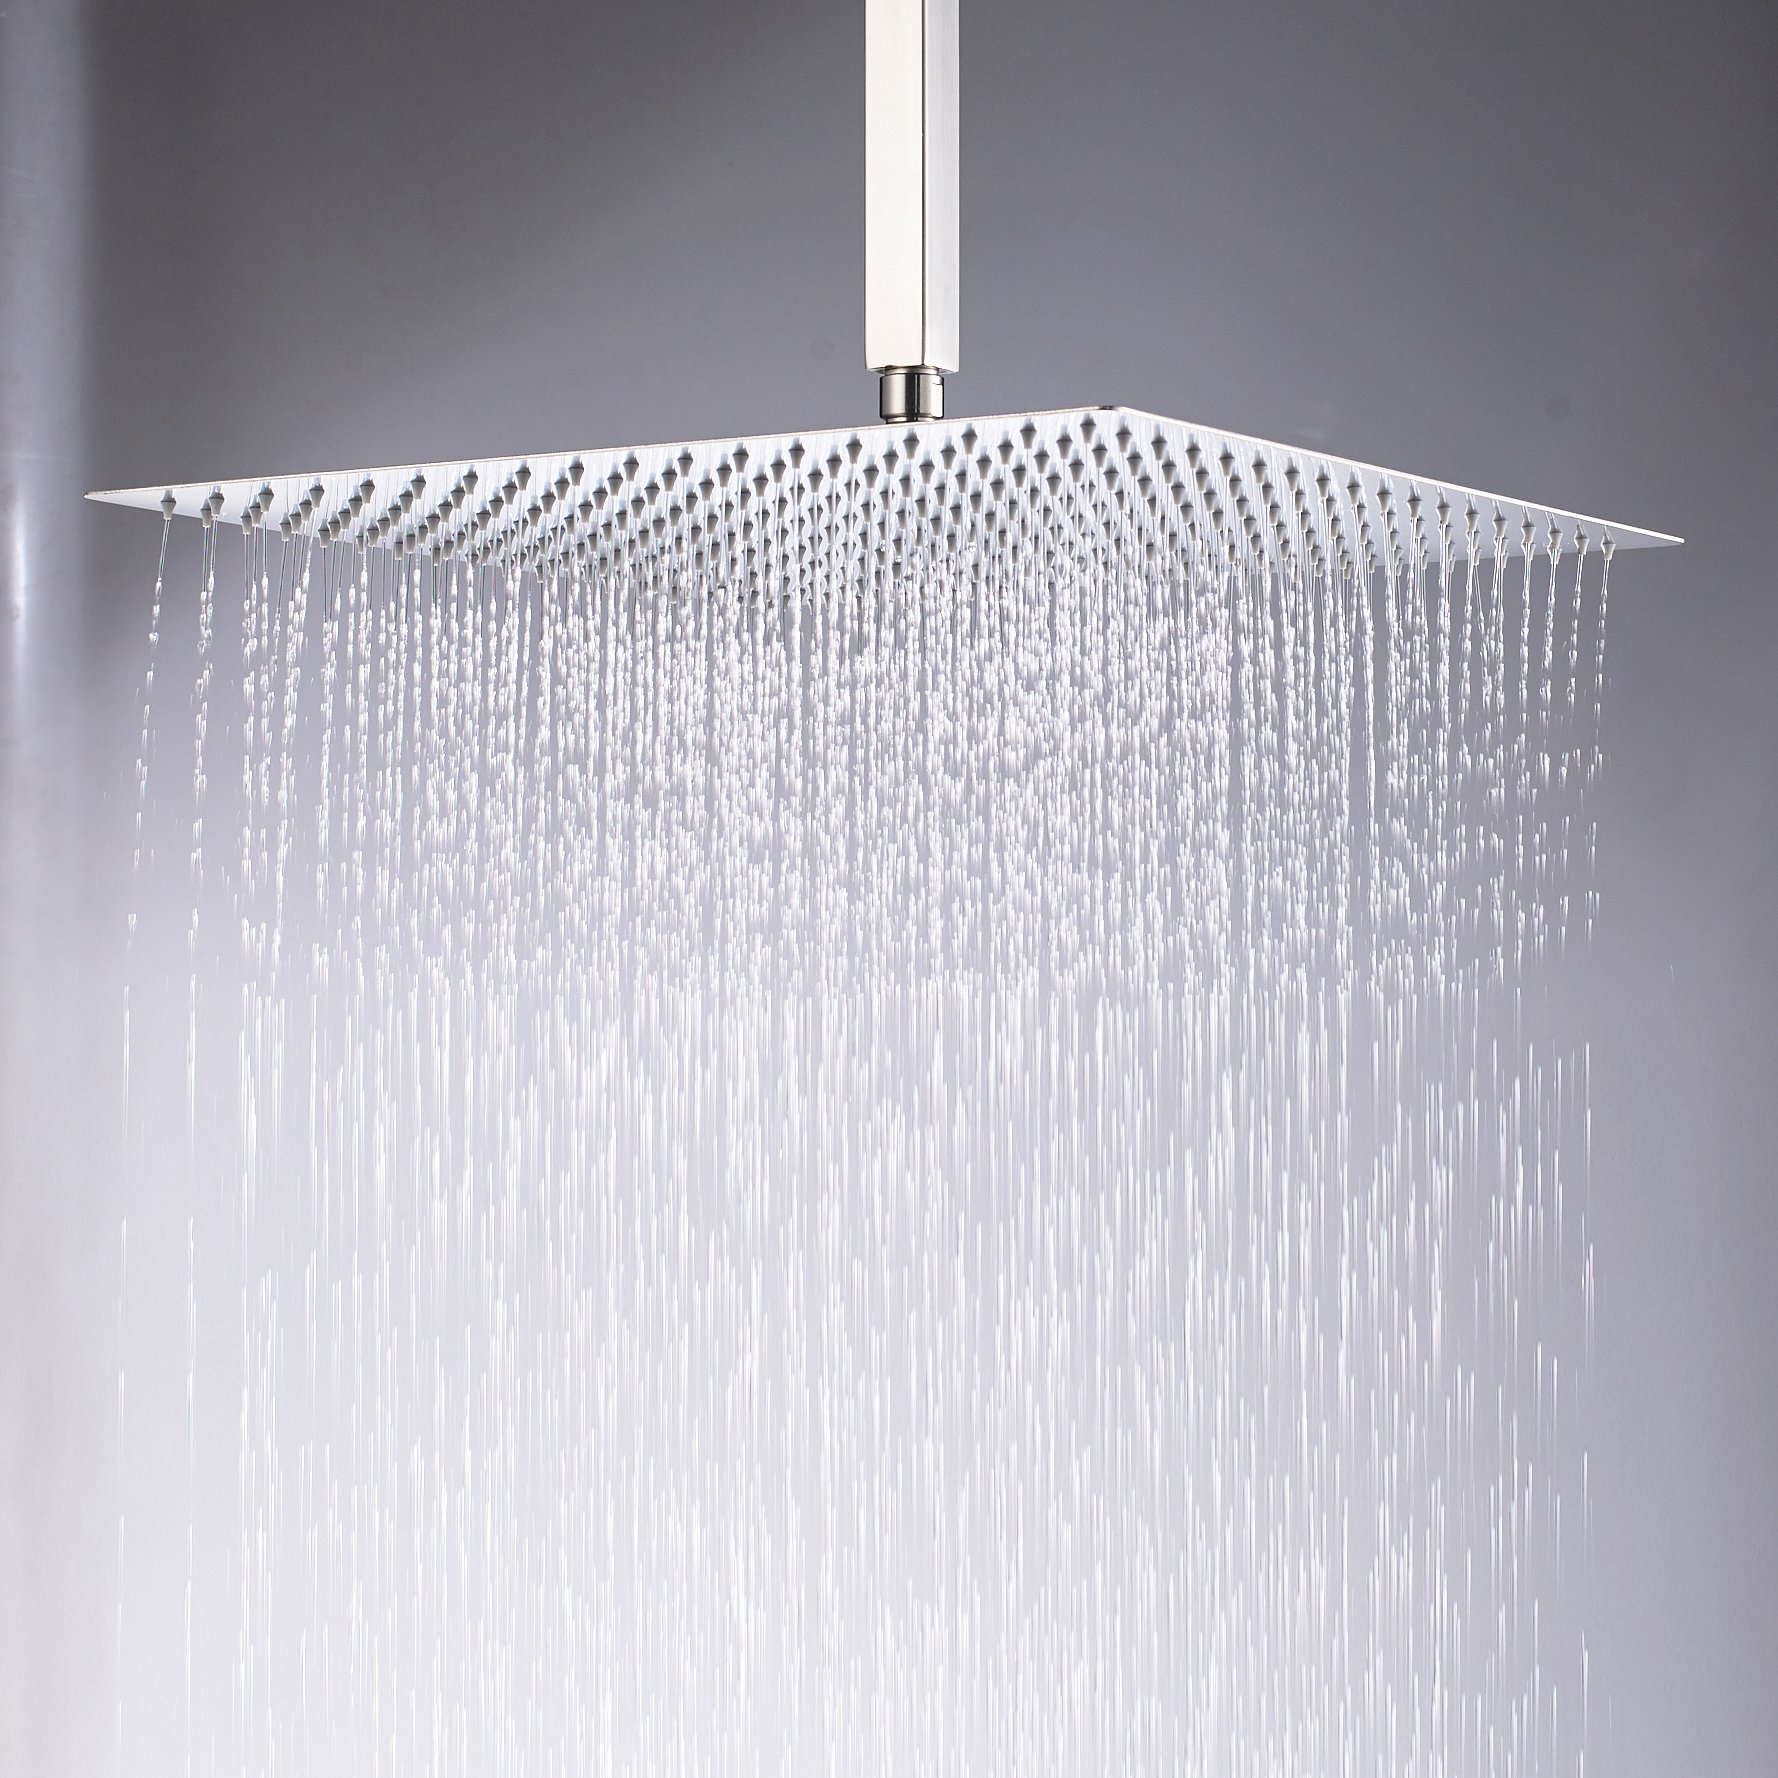 Rozin Brushed Nickel 16-inch Rainfall Shower Head Square Bath Top Spray